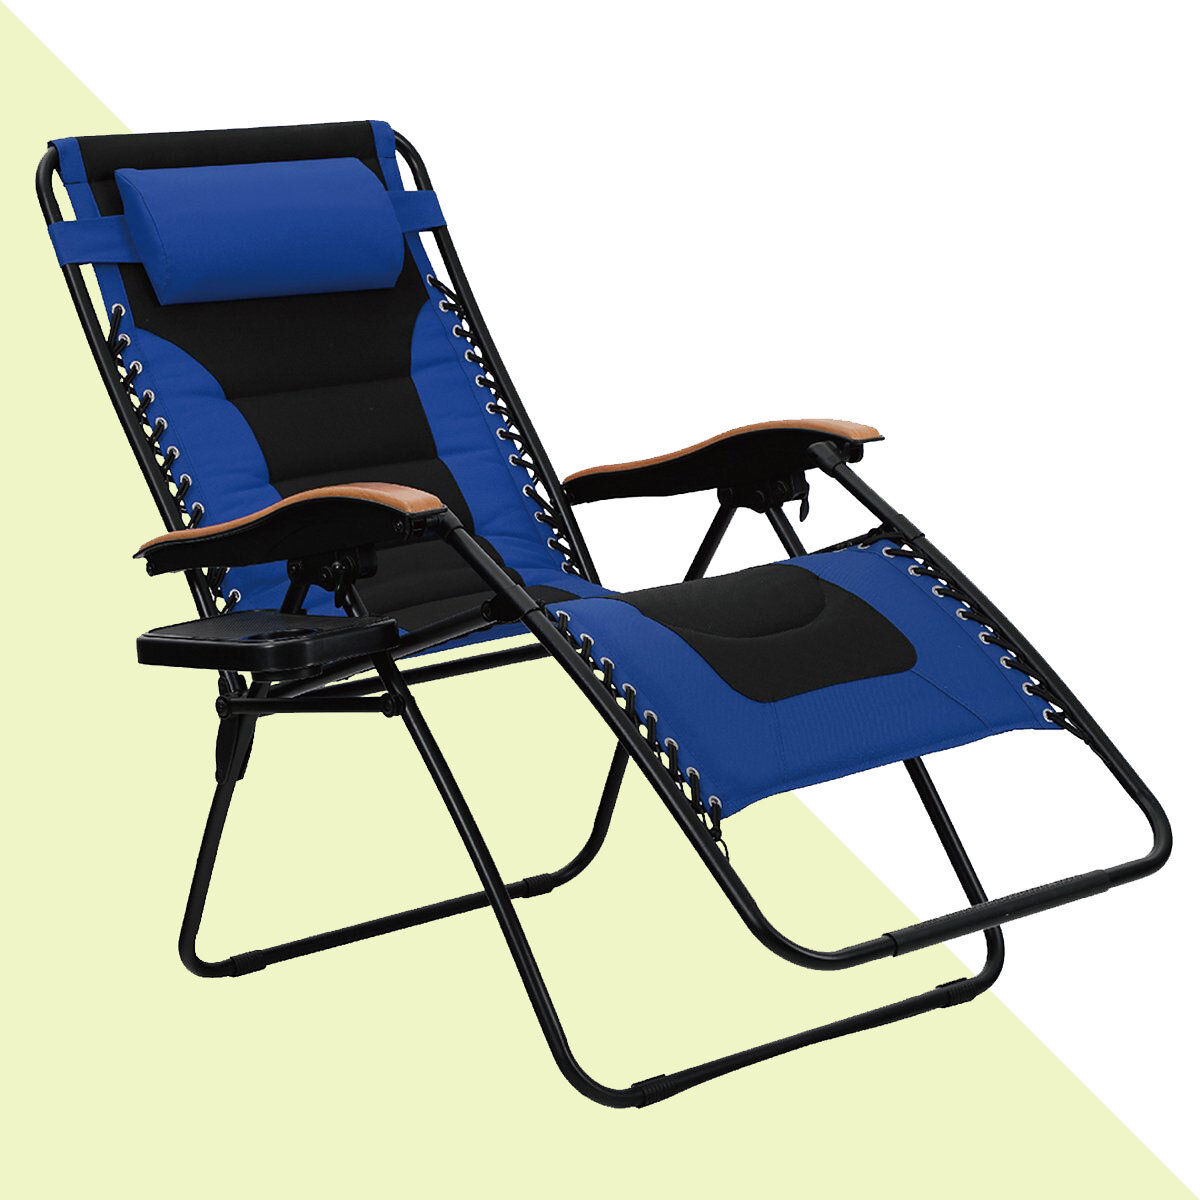 Load 200kg Length 180cm Black QYJ-Chairs Lounges Folding Lounge Chair Garden Chair Office Lunch Break Chair Simple Outdoor Beach Camping Chair with Pillow//Tray